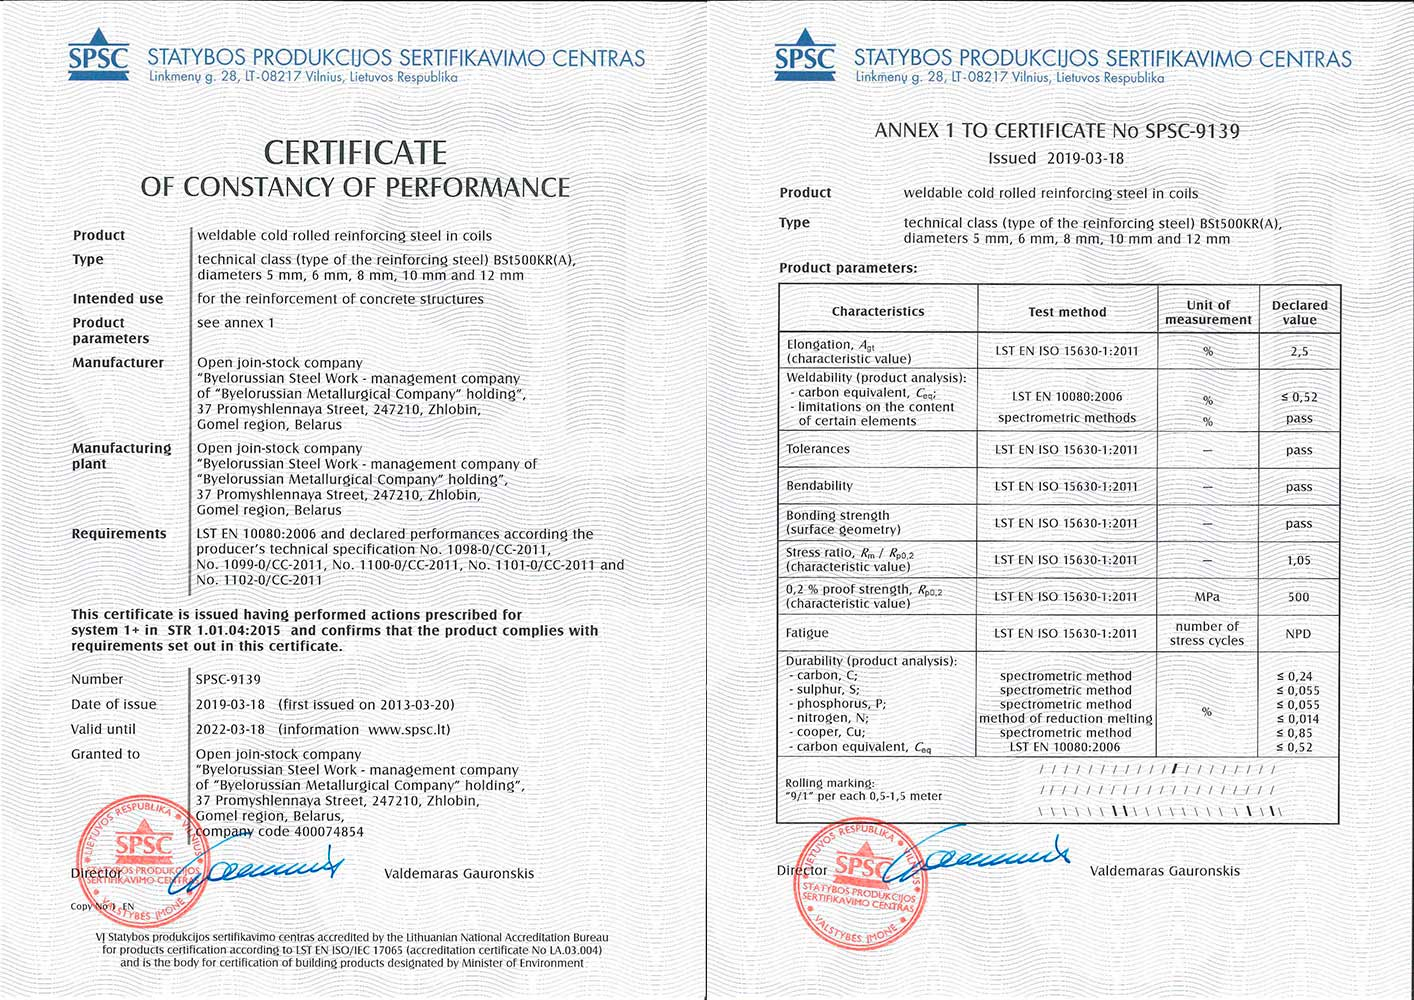 Certificate«SPSC», Lithuania, No. SPSC-9139 for production of weldable cold-deformed reinforcing steel in coils BSt500KR(A) Ø 5,6,8,10,12 mm in conformity with standard LST EN 10080:2006 and producer's technical specifications No.1098-0/CC-2011, No.1099-0/CC-2011, No.1100-0/CC-2011, No.1101-0/CC-2011, No.1102-0/CC-2011.